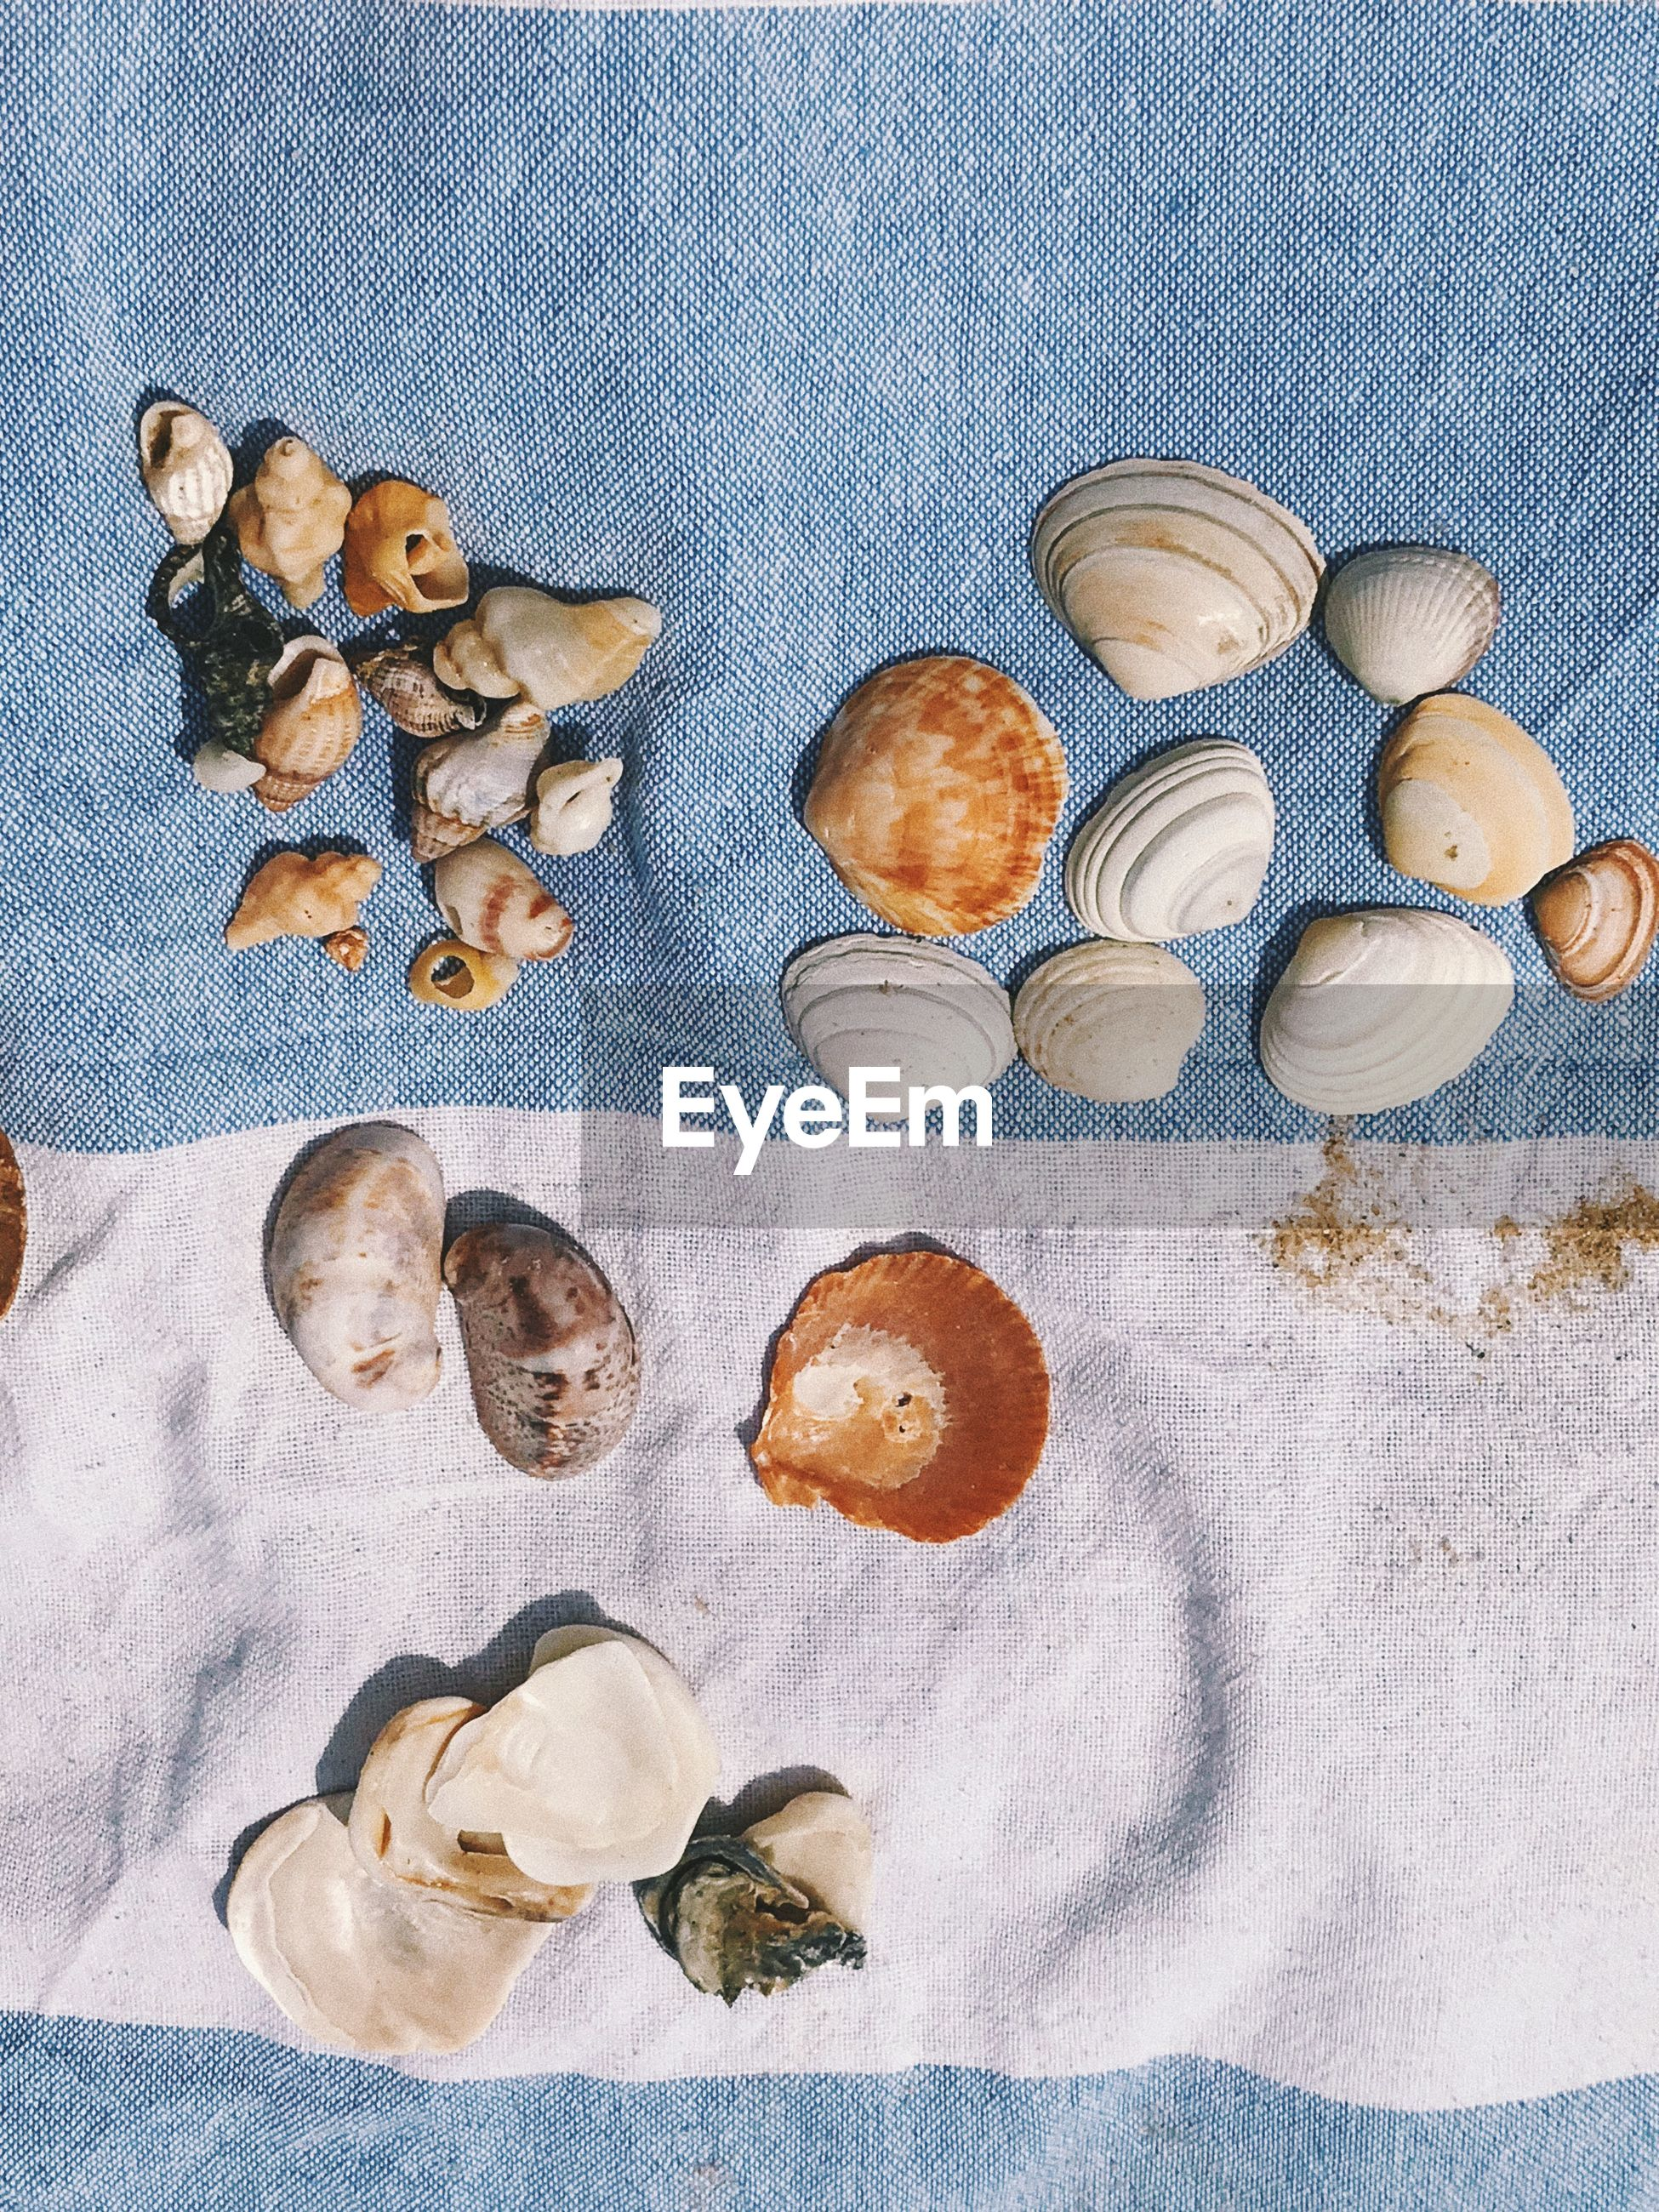 Directly above shot of shells on textile for sale